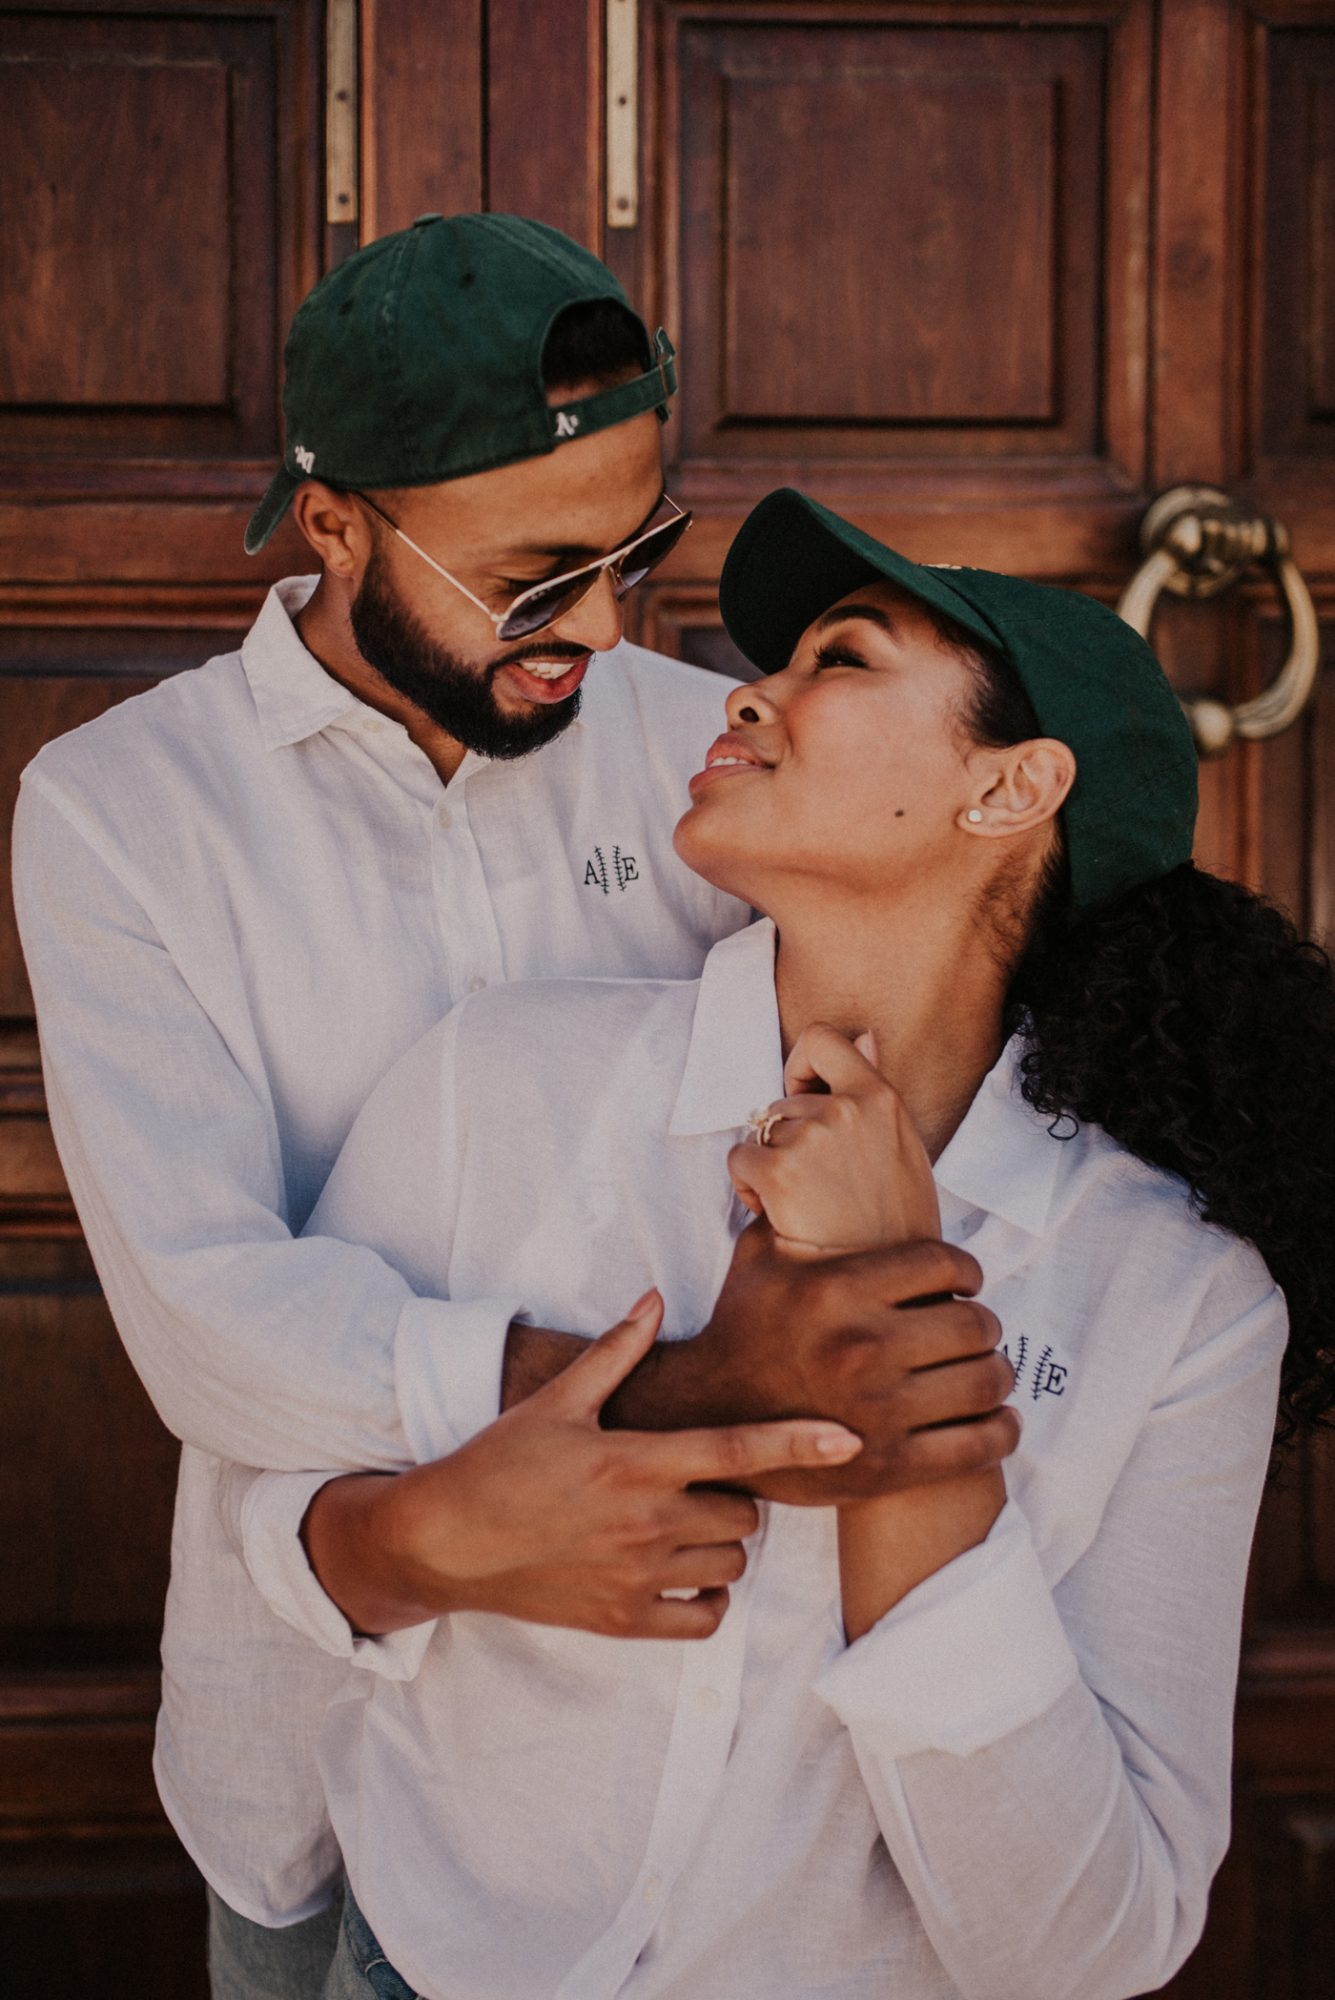 couple stands in matching white dress shirts and green baseball caps